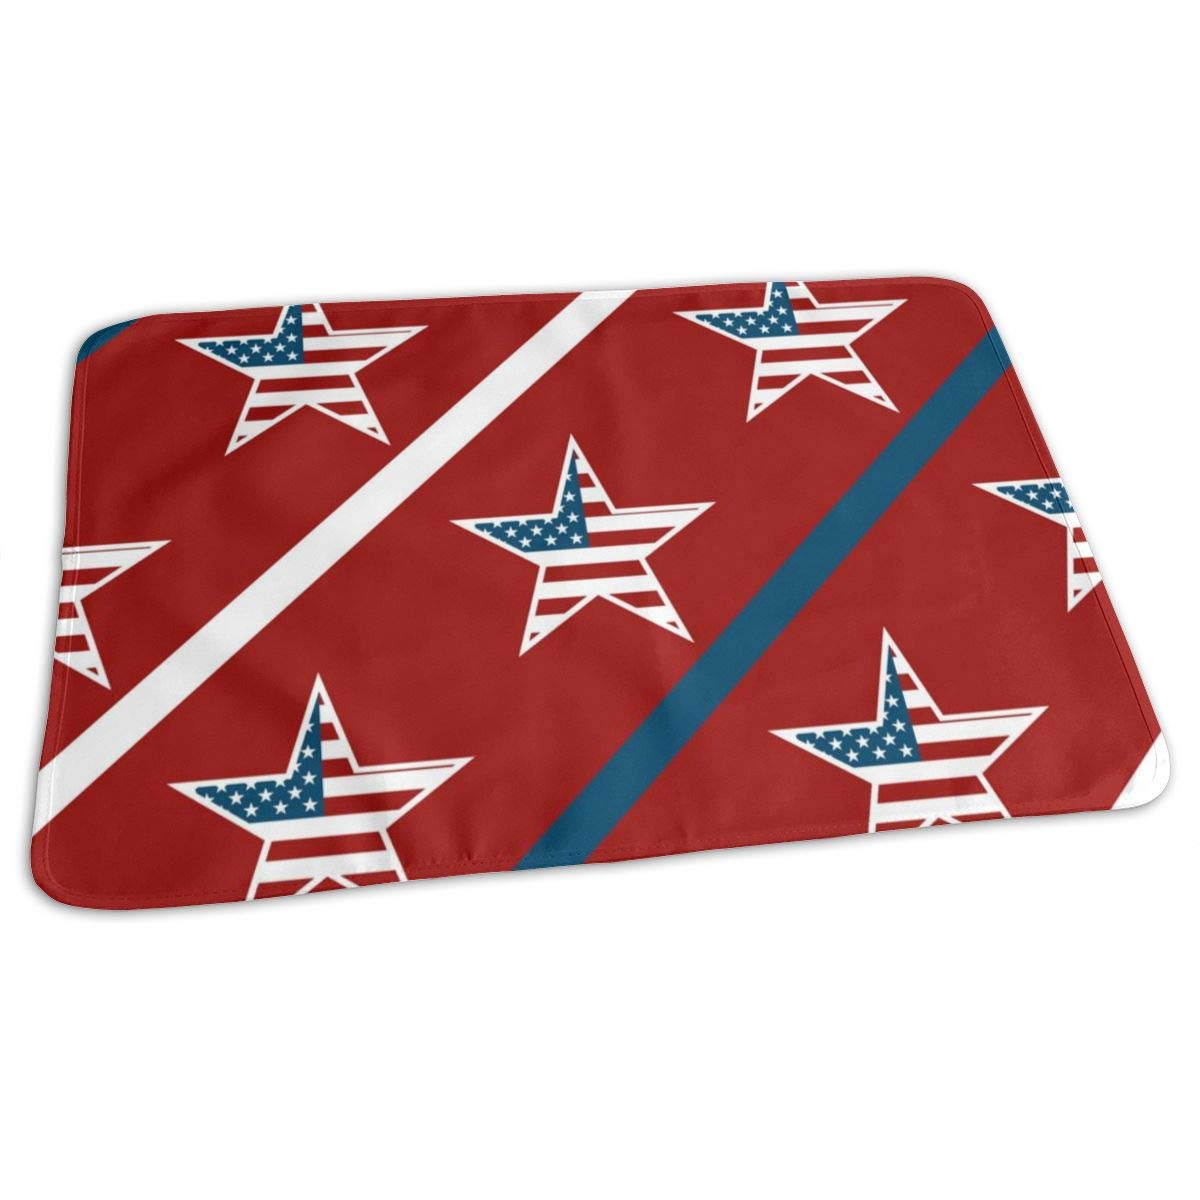 Osvbs Lovely Baby Reusable Waterproof Portable American Flag Pentagon Changing Pad Home Travel 27.5''x19.7'' by Osvbs